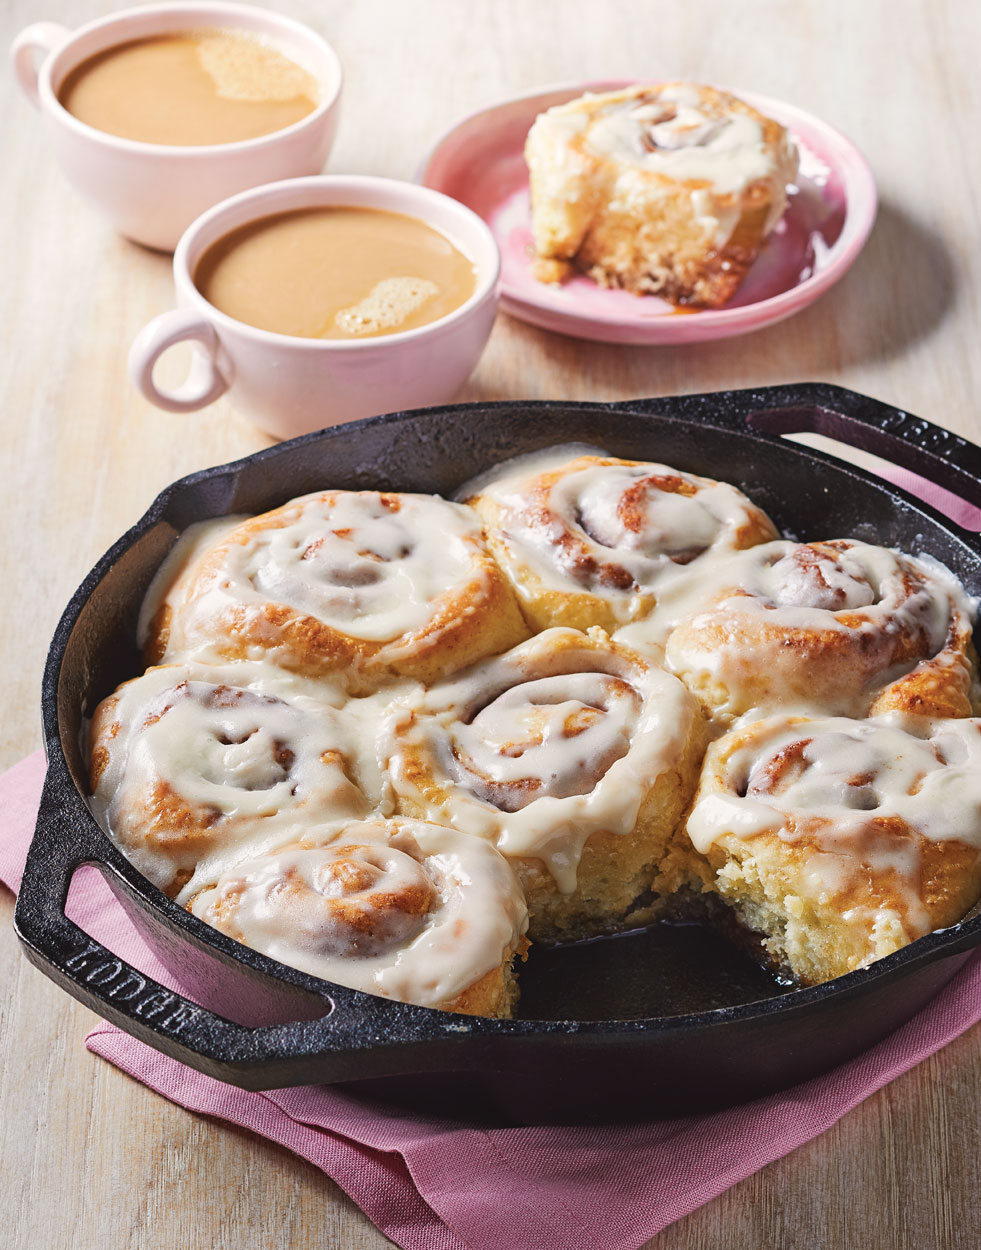 Frosted Cinnamon Rolls with Sticky Syrup